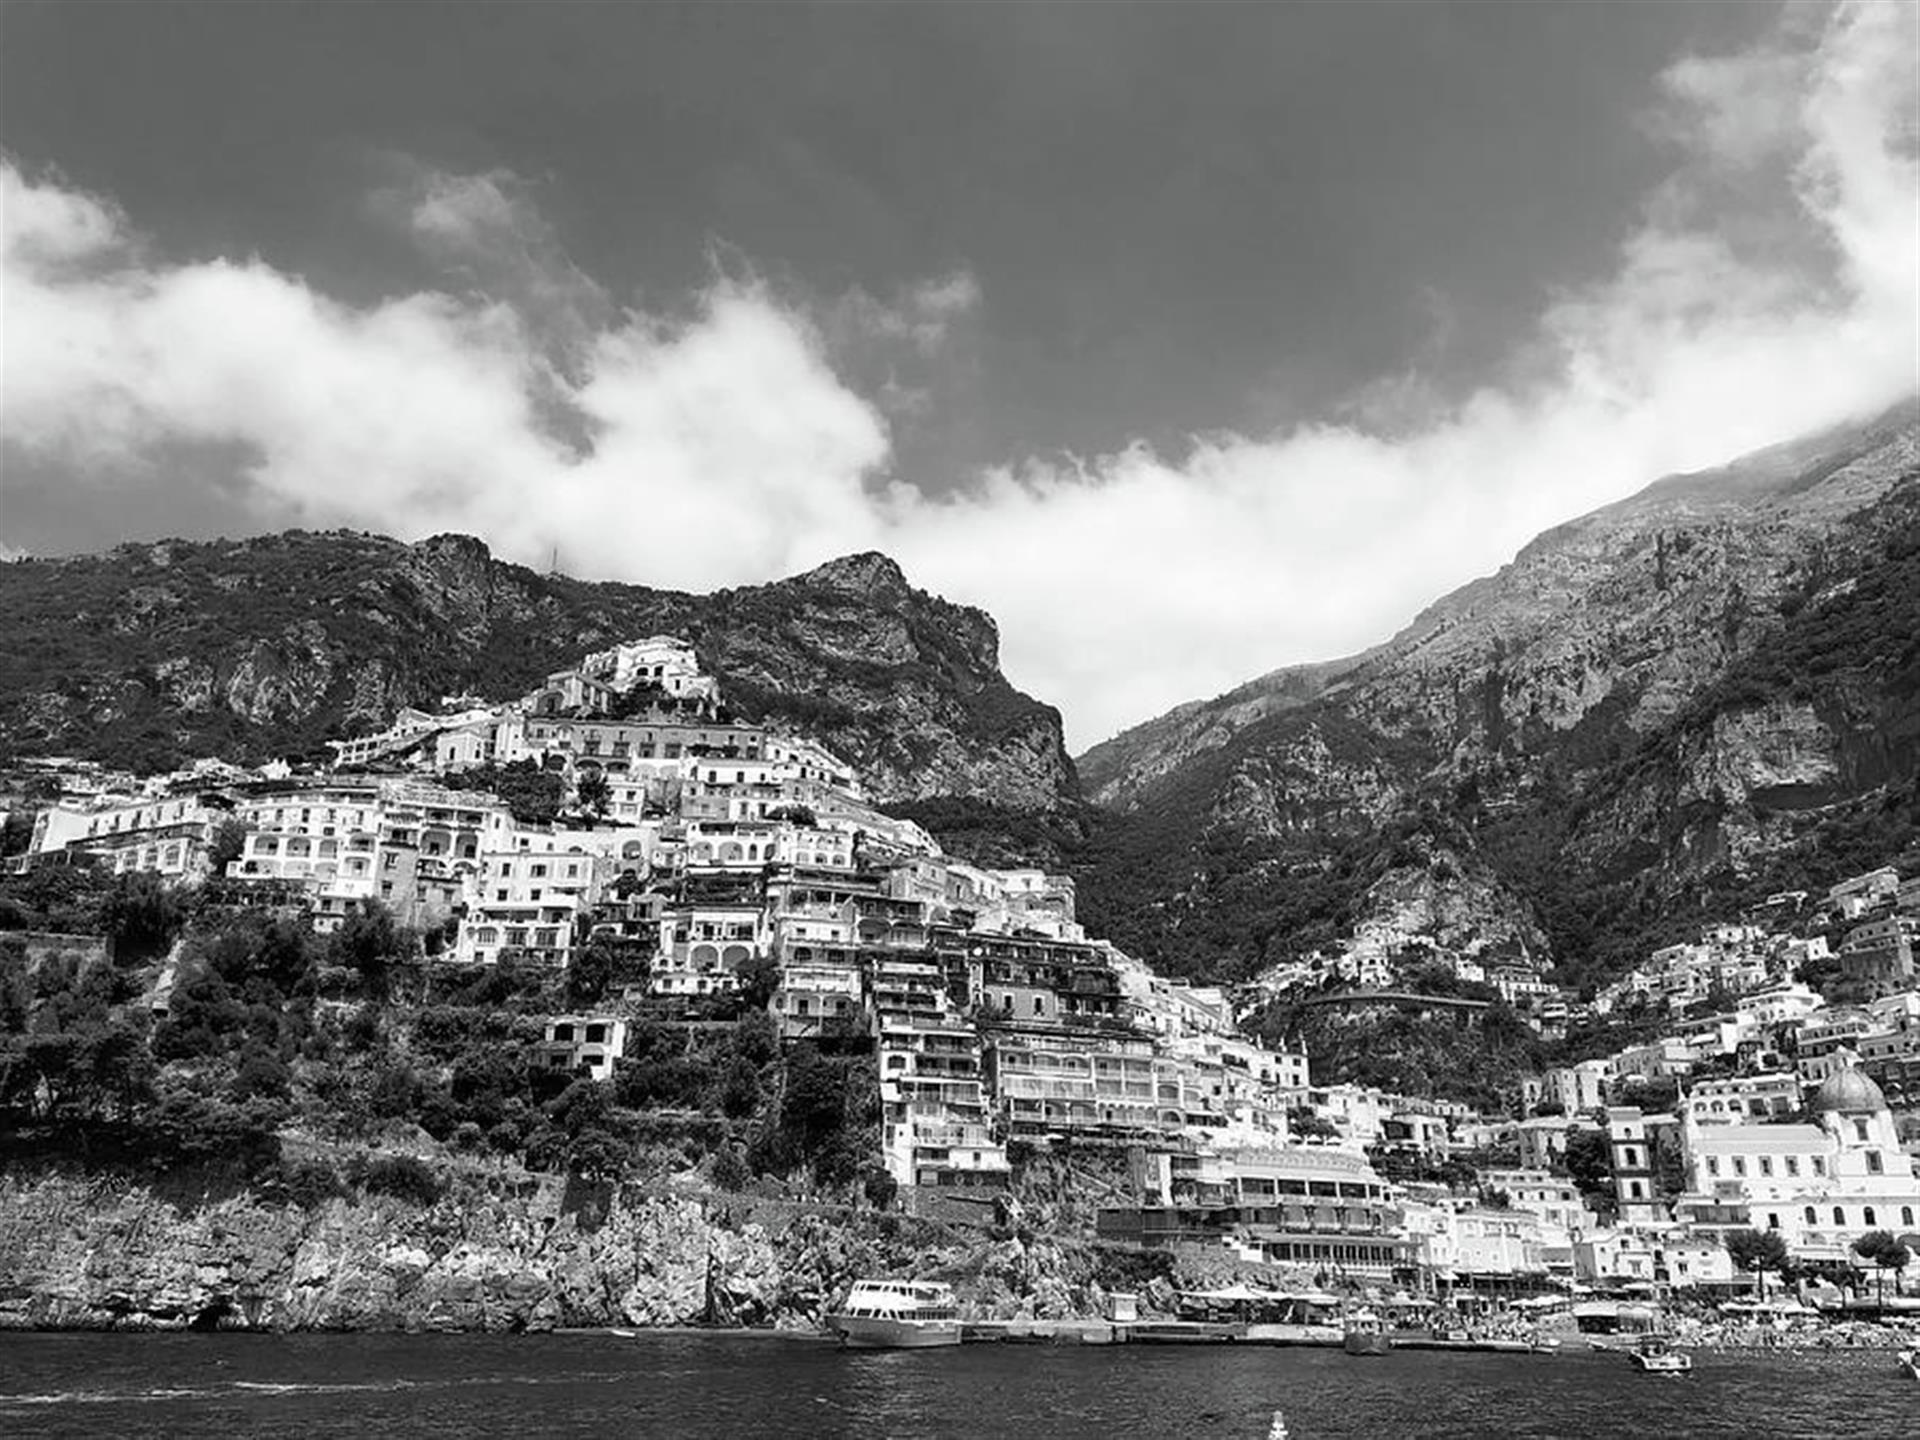 houses on a cliff in italy on the coast